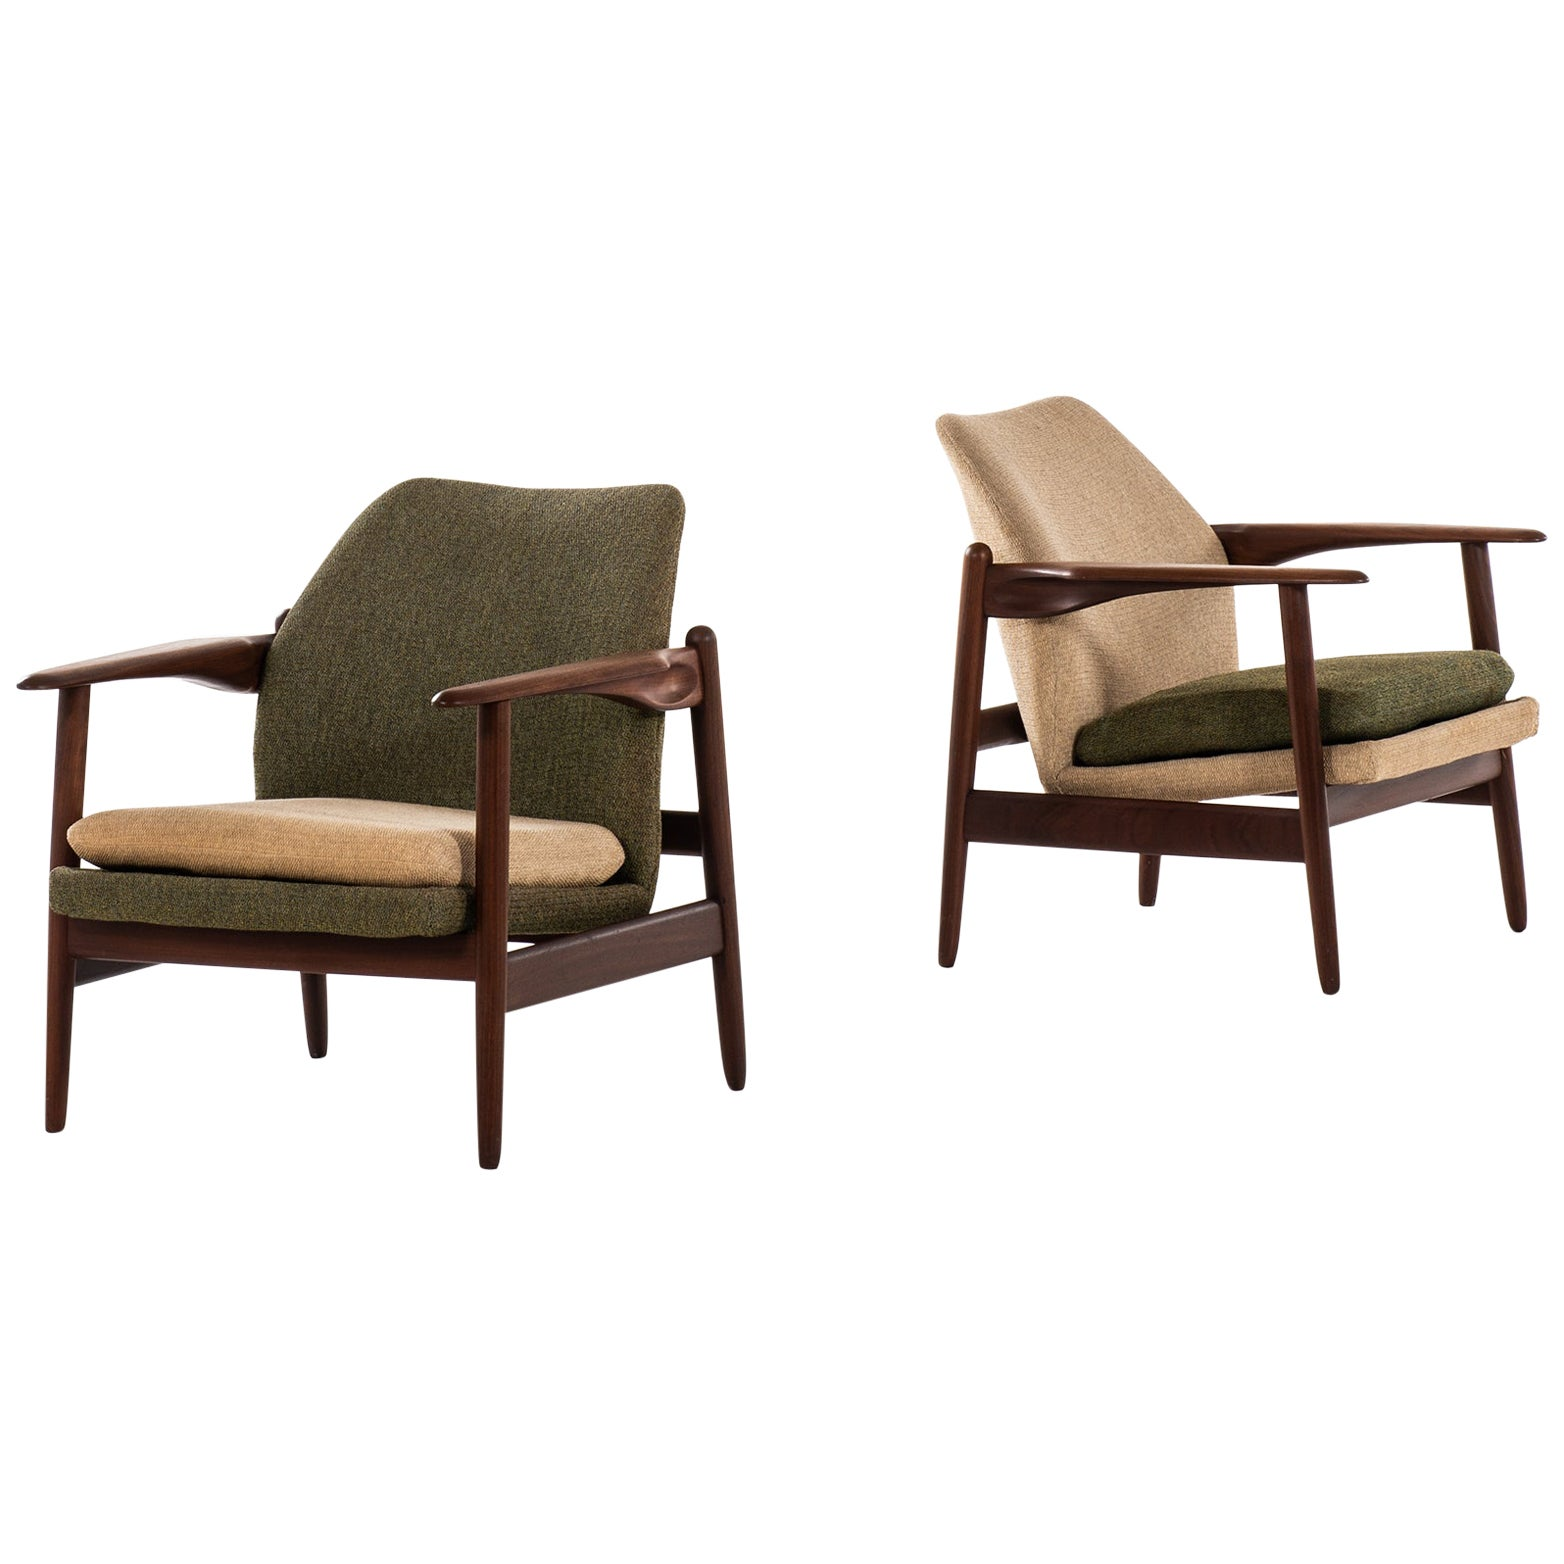 Pair of Easy Chairs Produced in Denmark